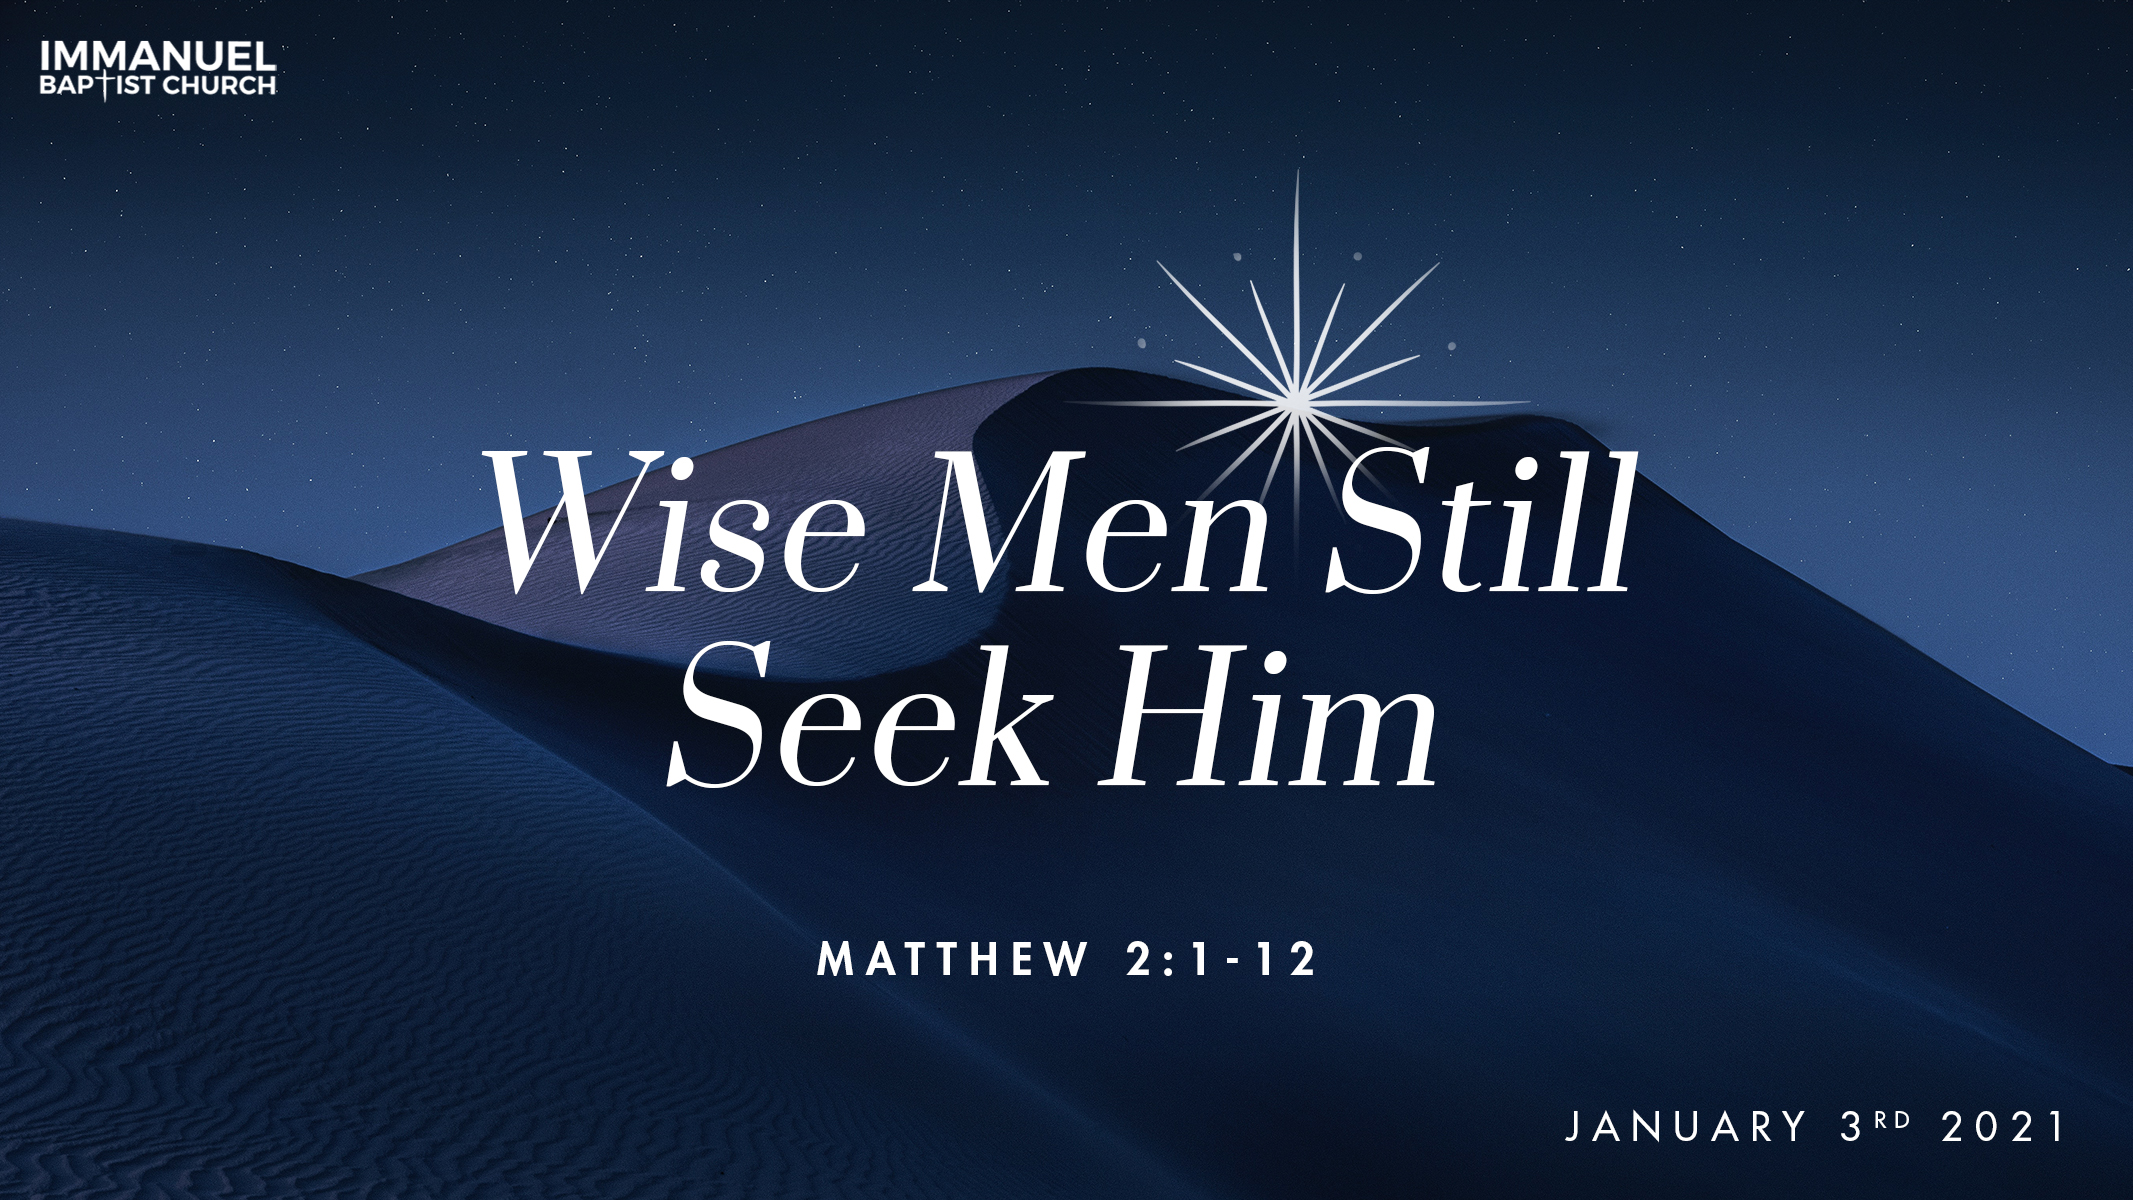 Wise Men Still Seek Him Image